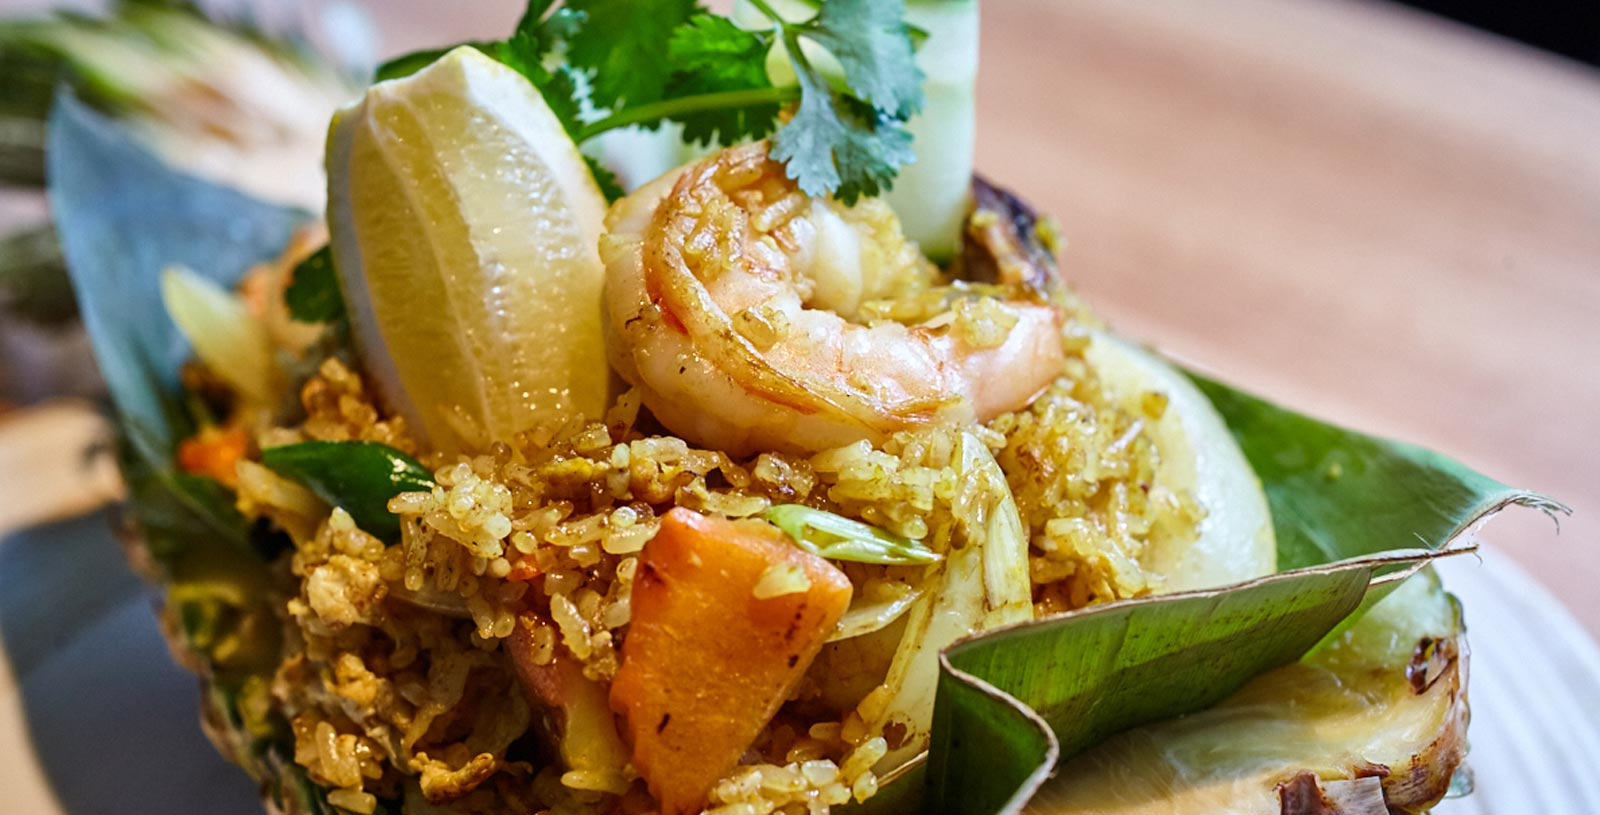 Pineapple fried rice with shrimp served in whole pineapple